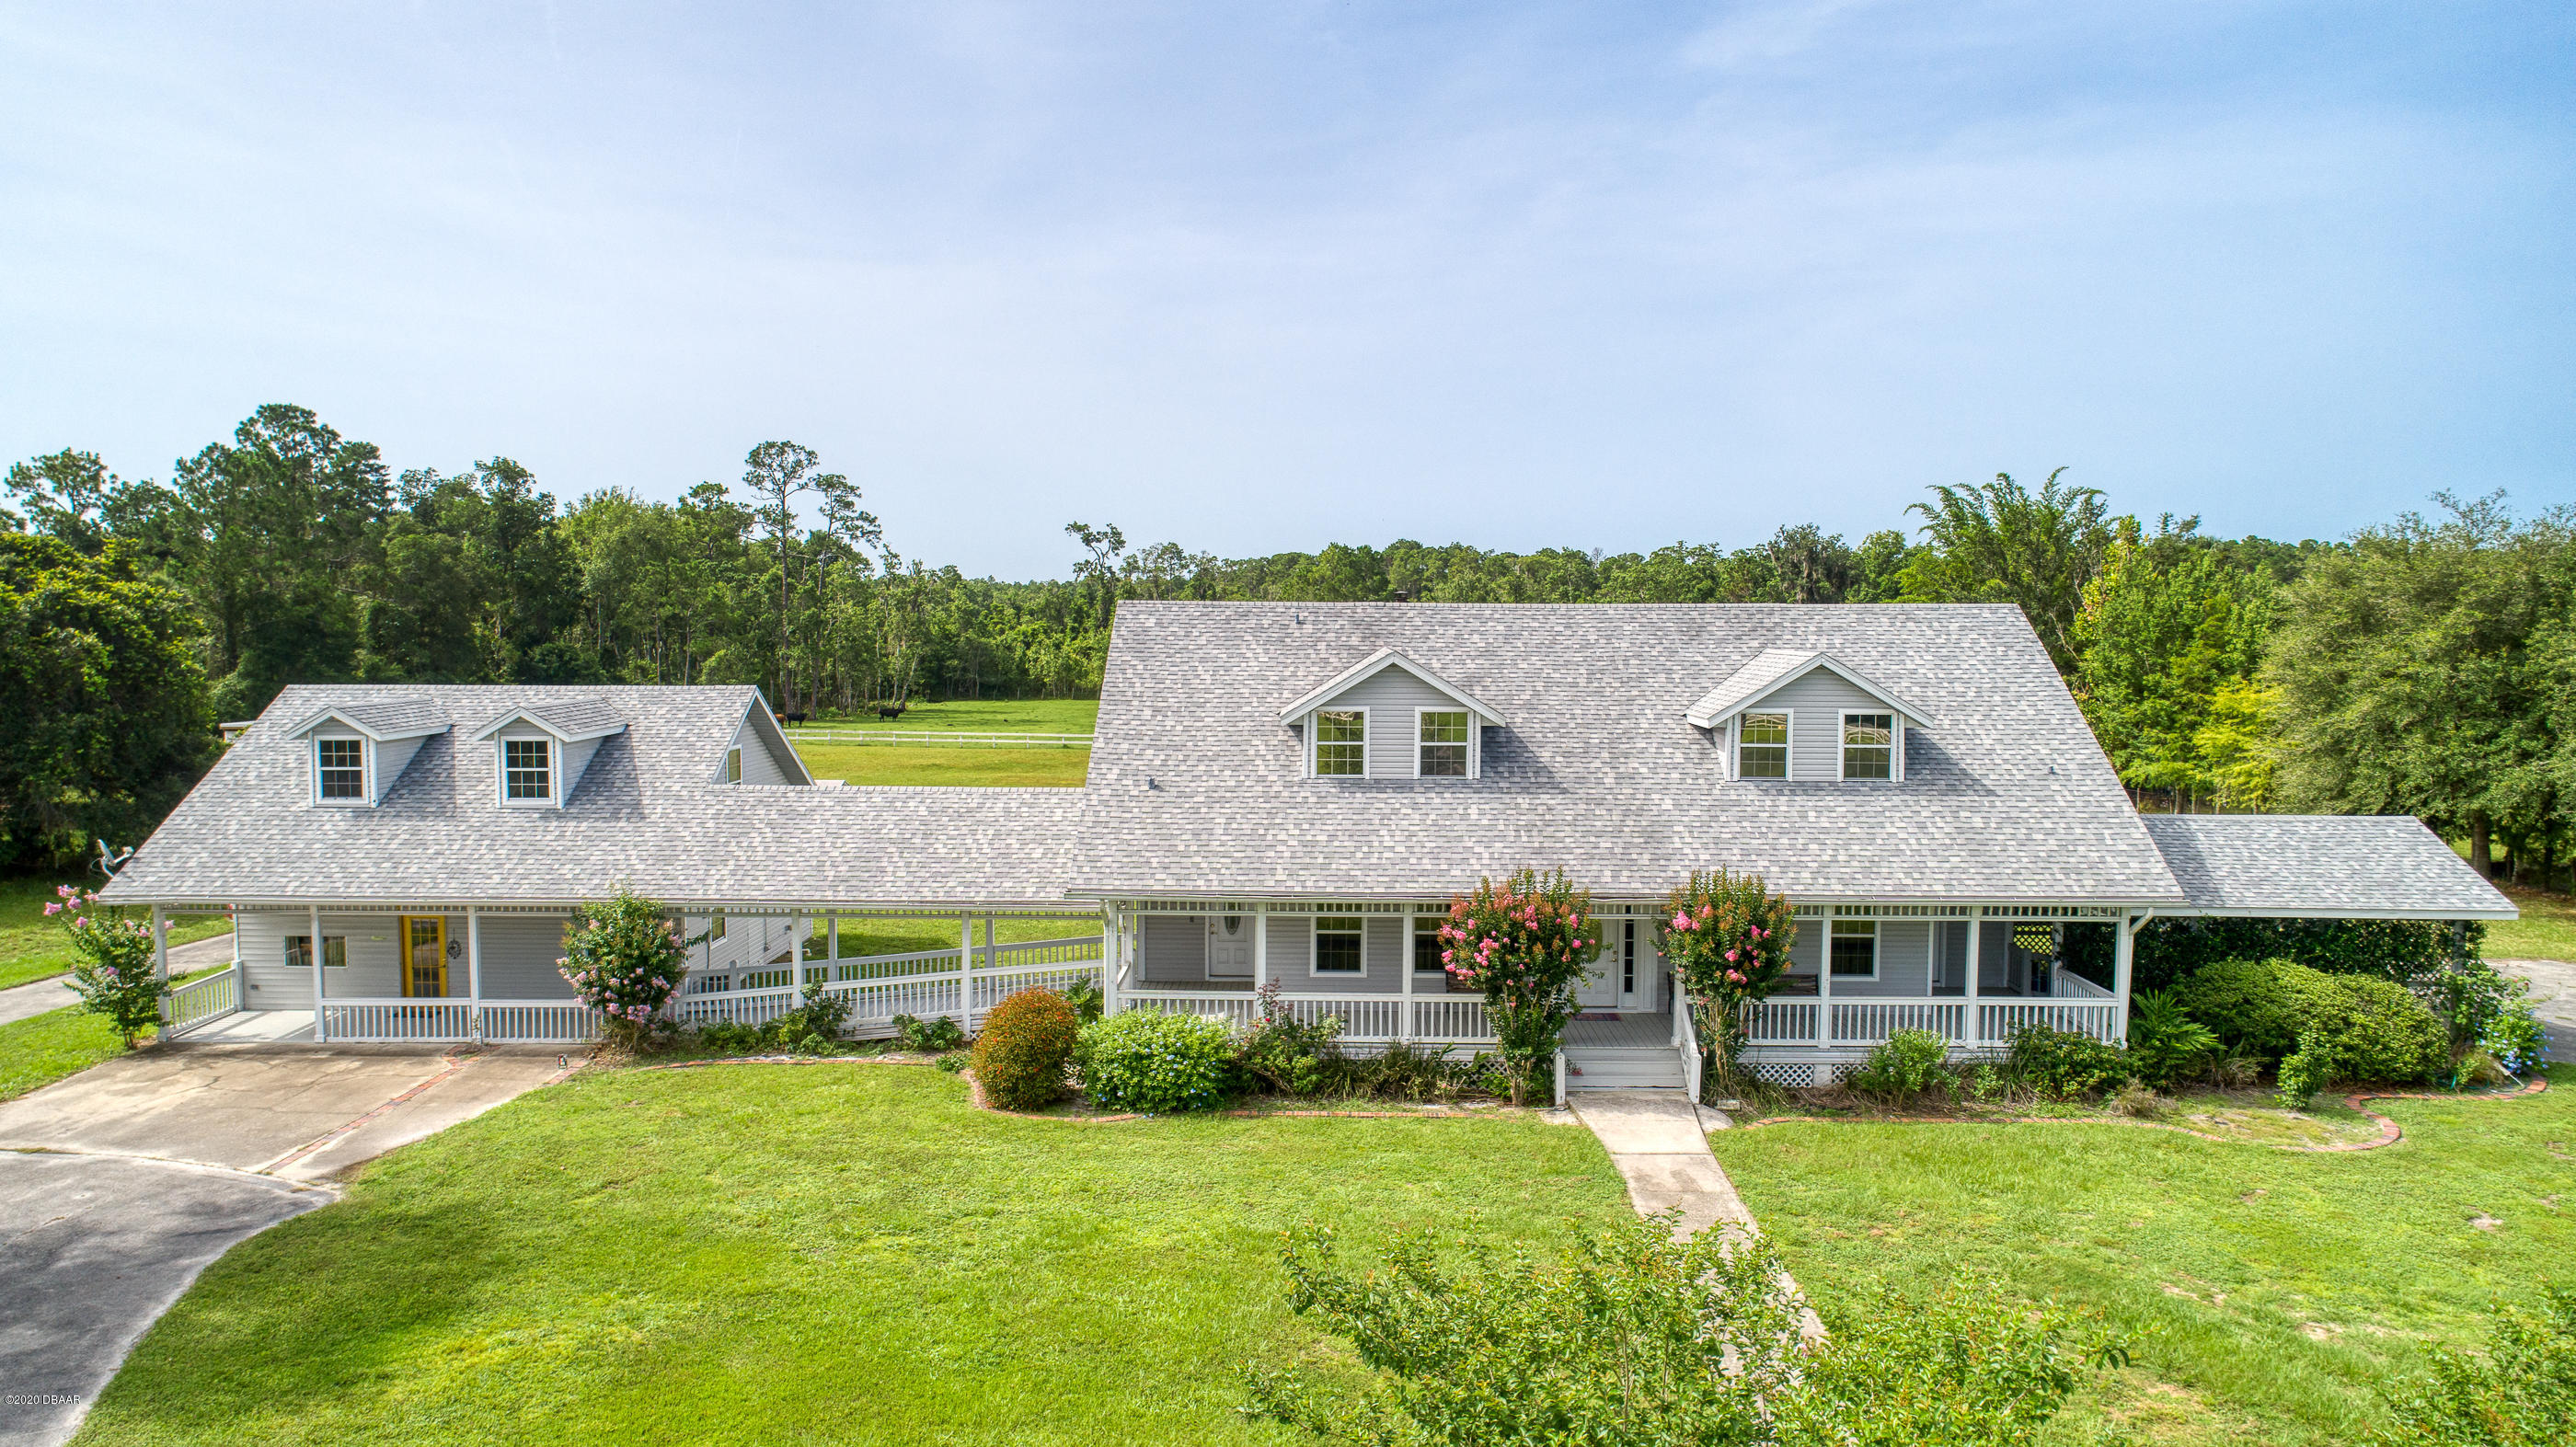 Photo of 355 W STATE ROAD 40, Pierson, FL 32180